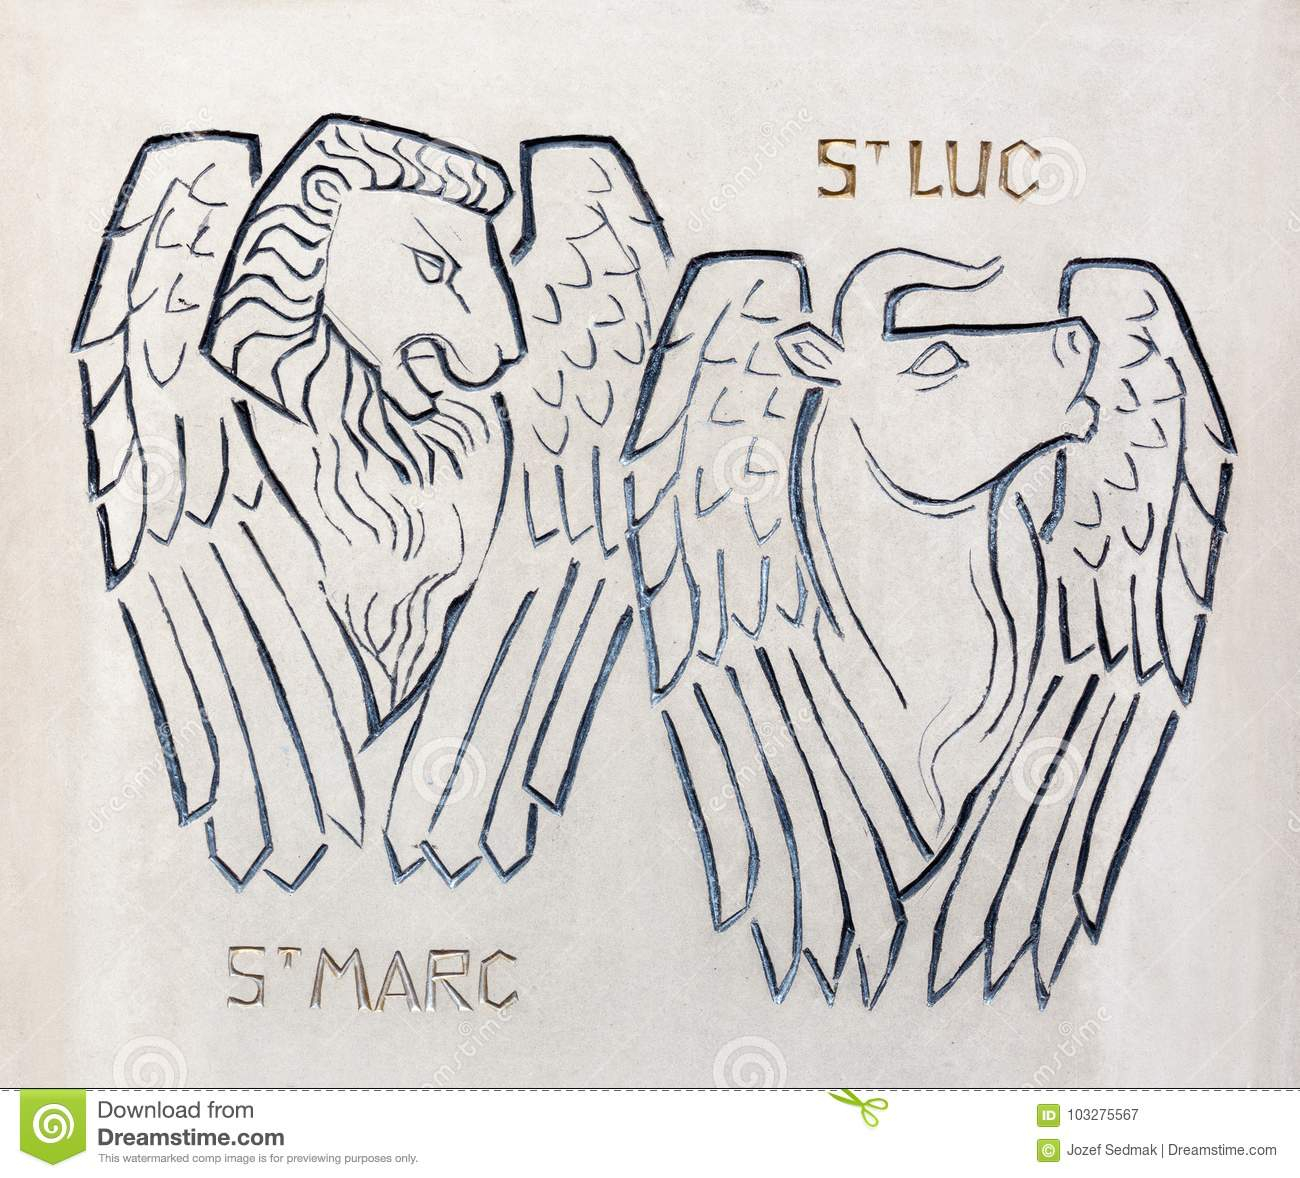 London Modern Relief Of St Luke And Mark The Evangelists Symbols